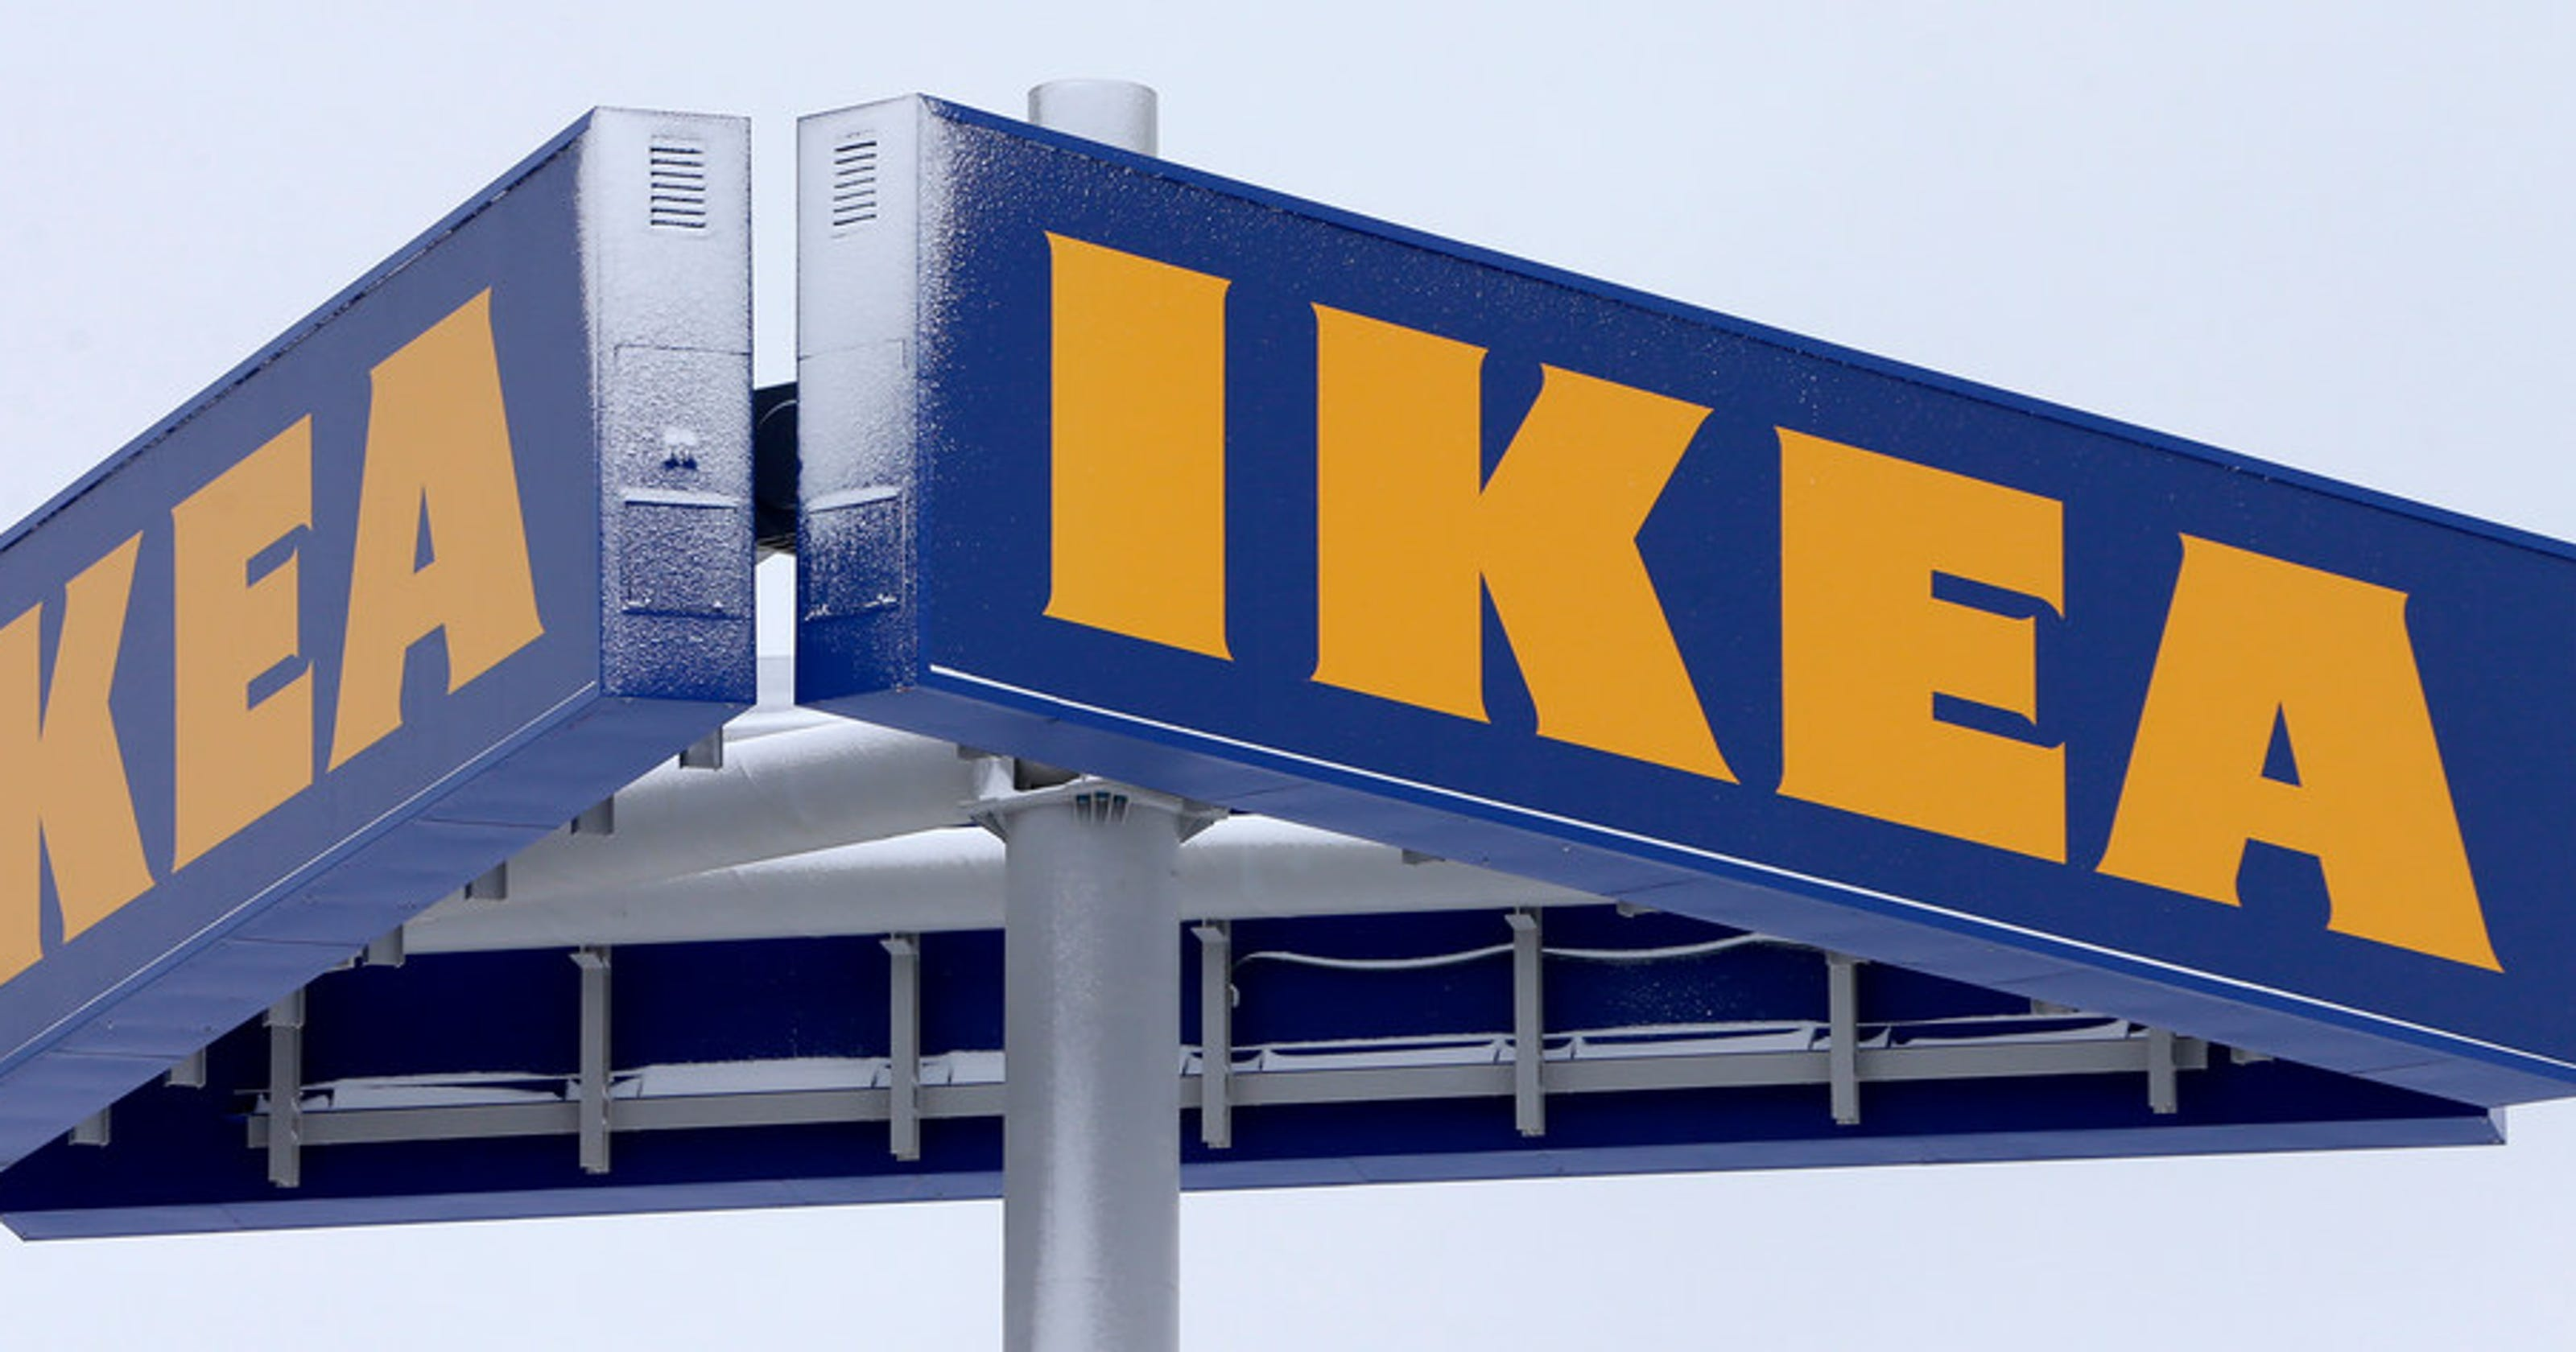 Swedish Themed Retailer Ikea Is Offering Special Promotions When Its